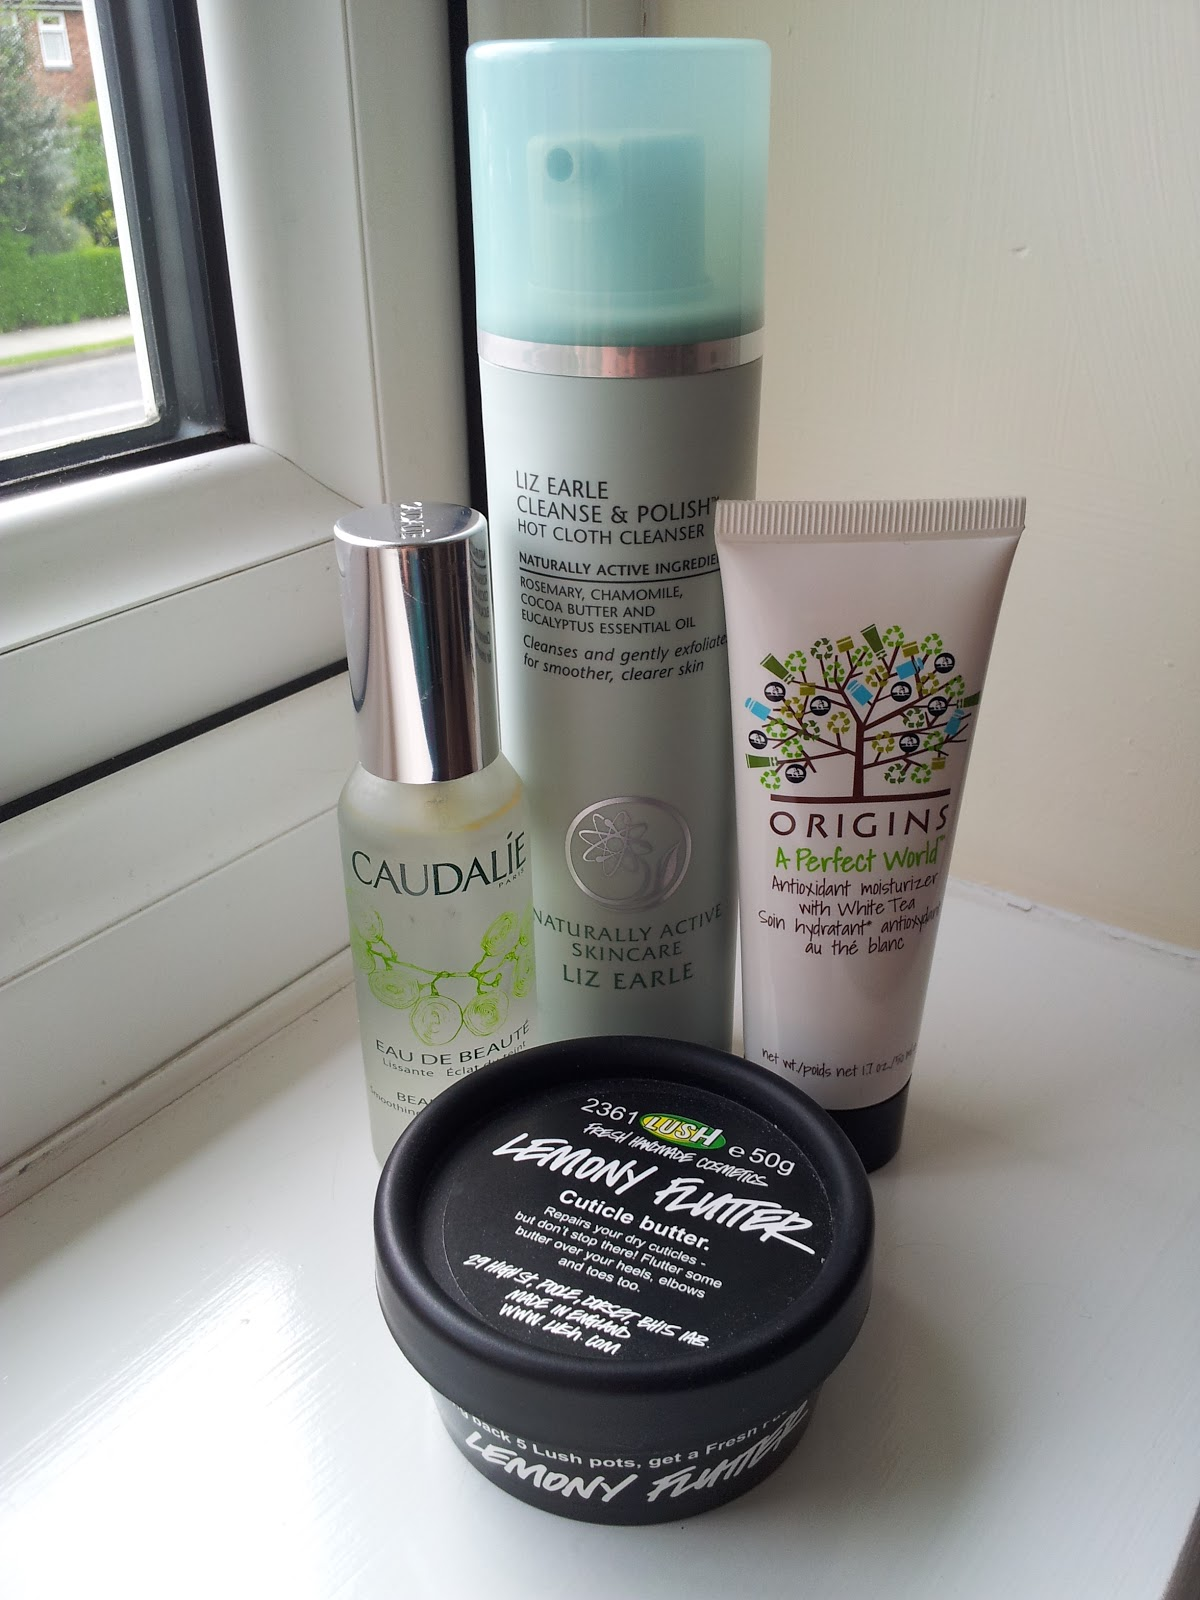 Liz Earle Cleanse and Polish Hot Cloth Cleanser, Caudalie Beauty Elixir, Origins A Perfect World Moisturizer, Lush Lemony Flutter Cuticle Butter